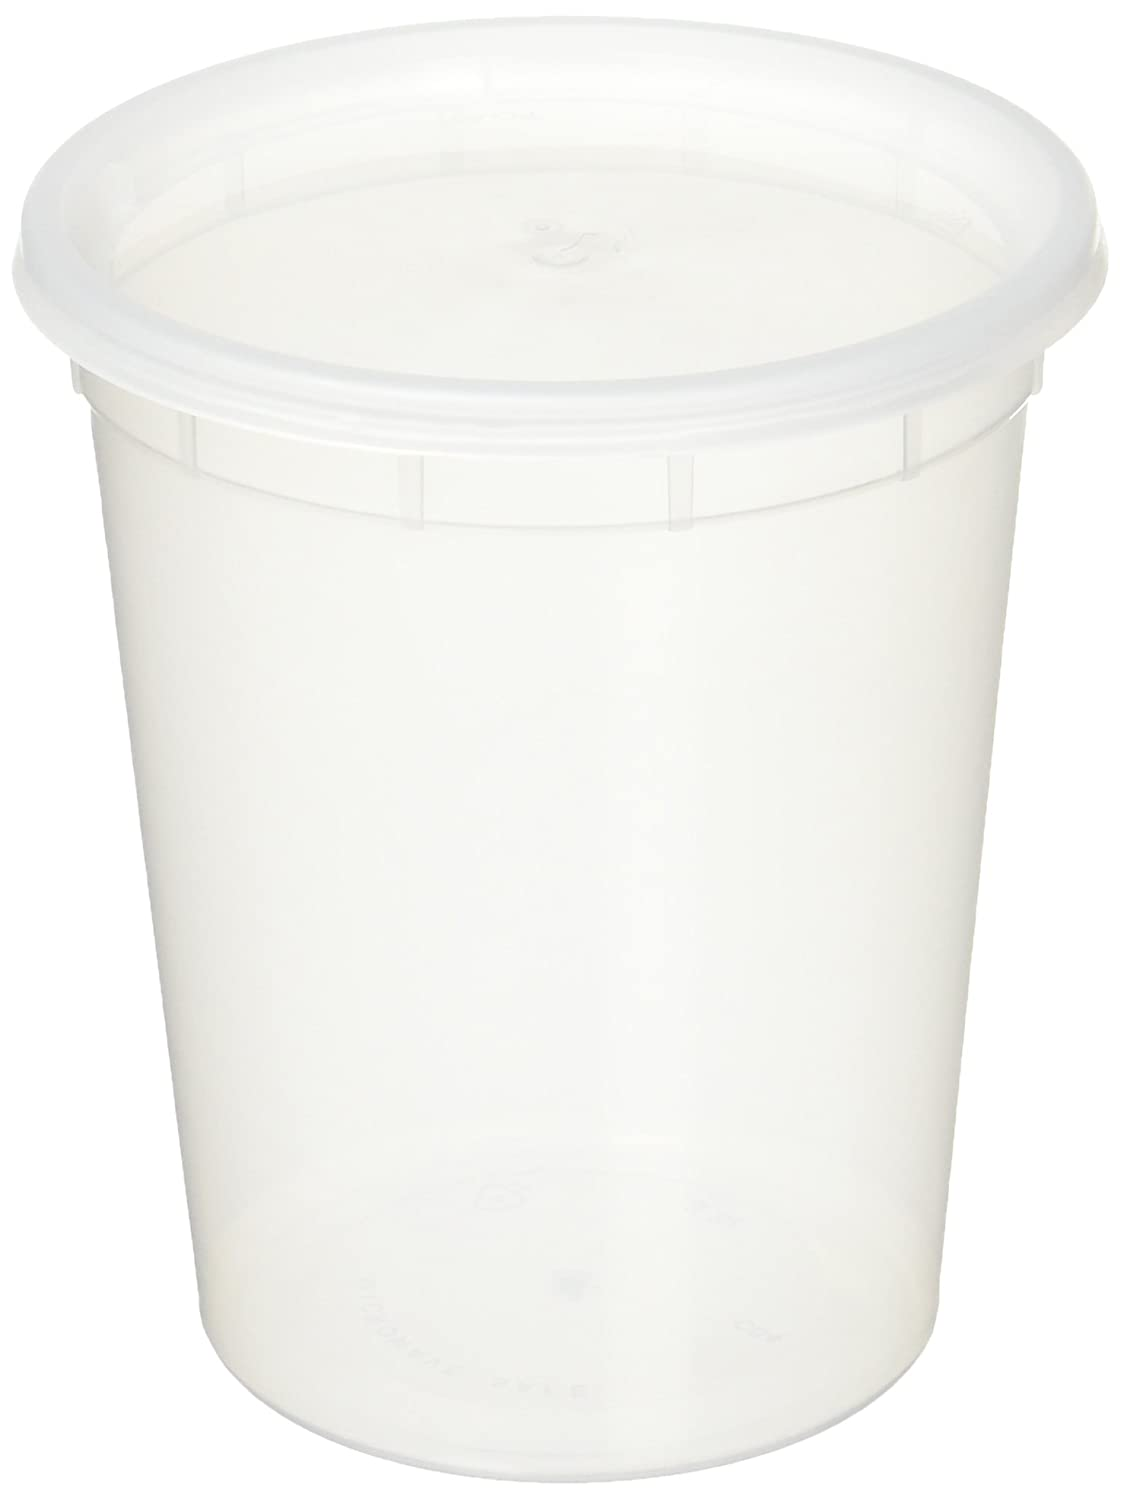 Amazoncom Reditainer Deli Food Storage Containers with Lid 16